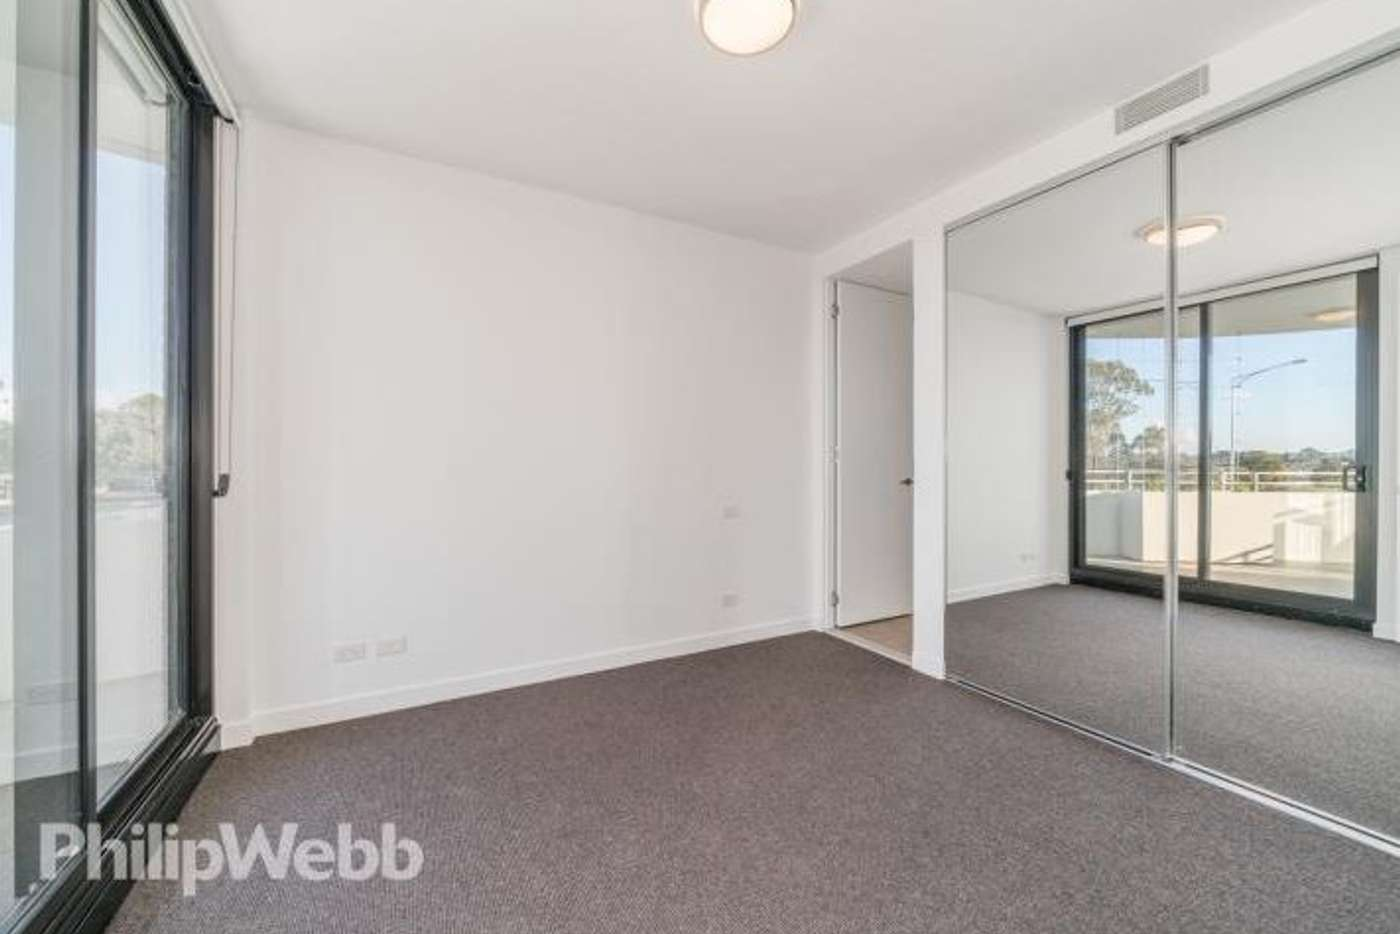 Sixth view of Homely apartment listing, 209/1 Pettys Lane, Doncaster VIC 3108